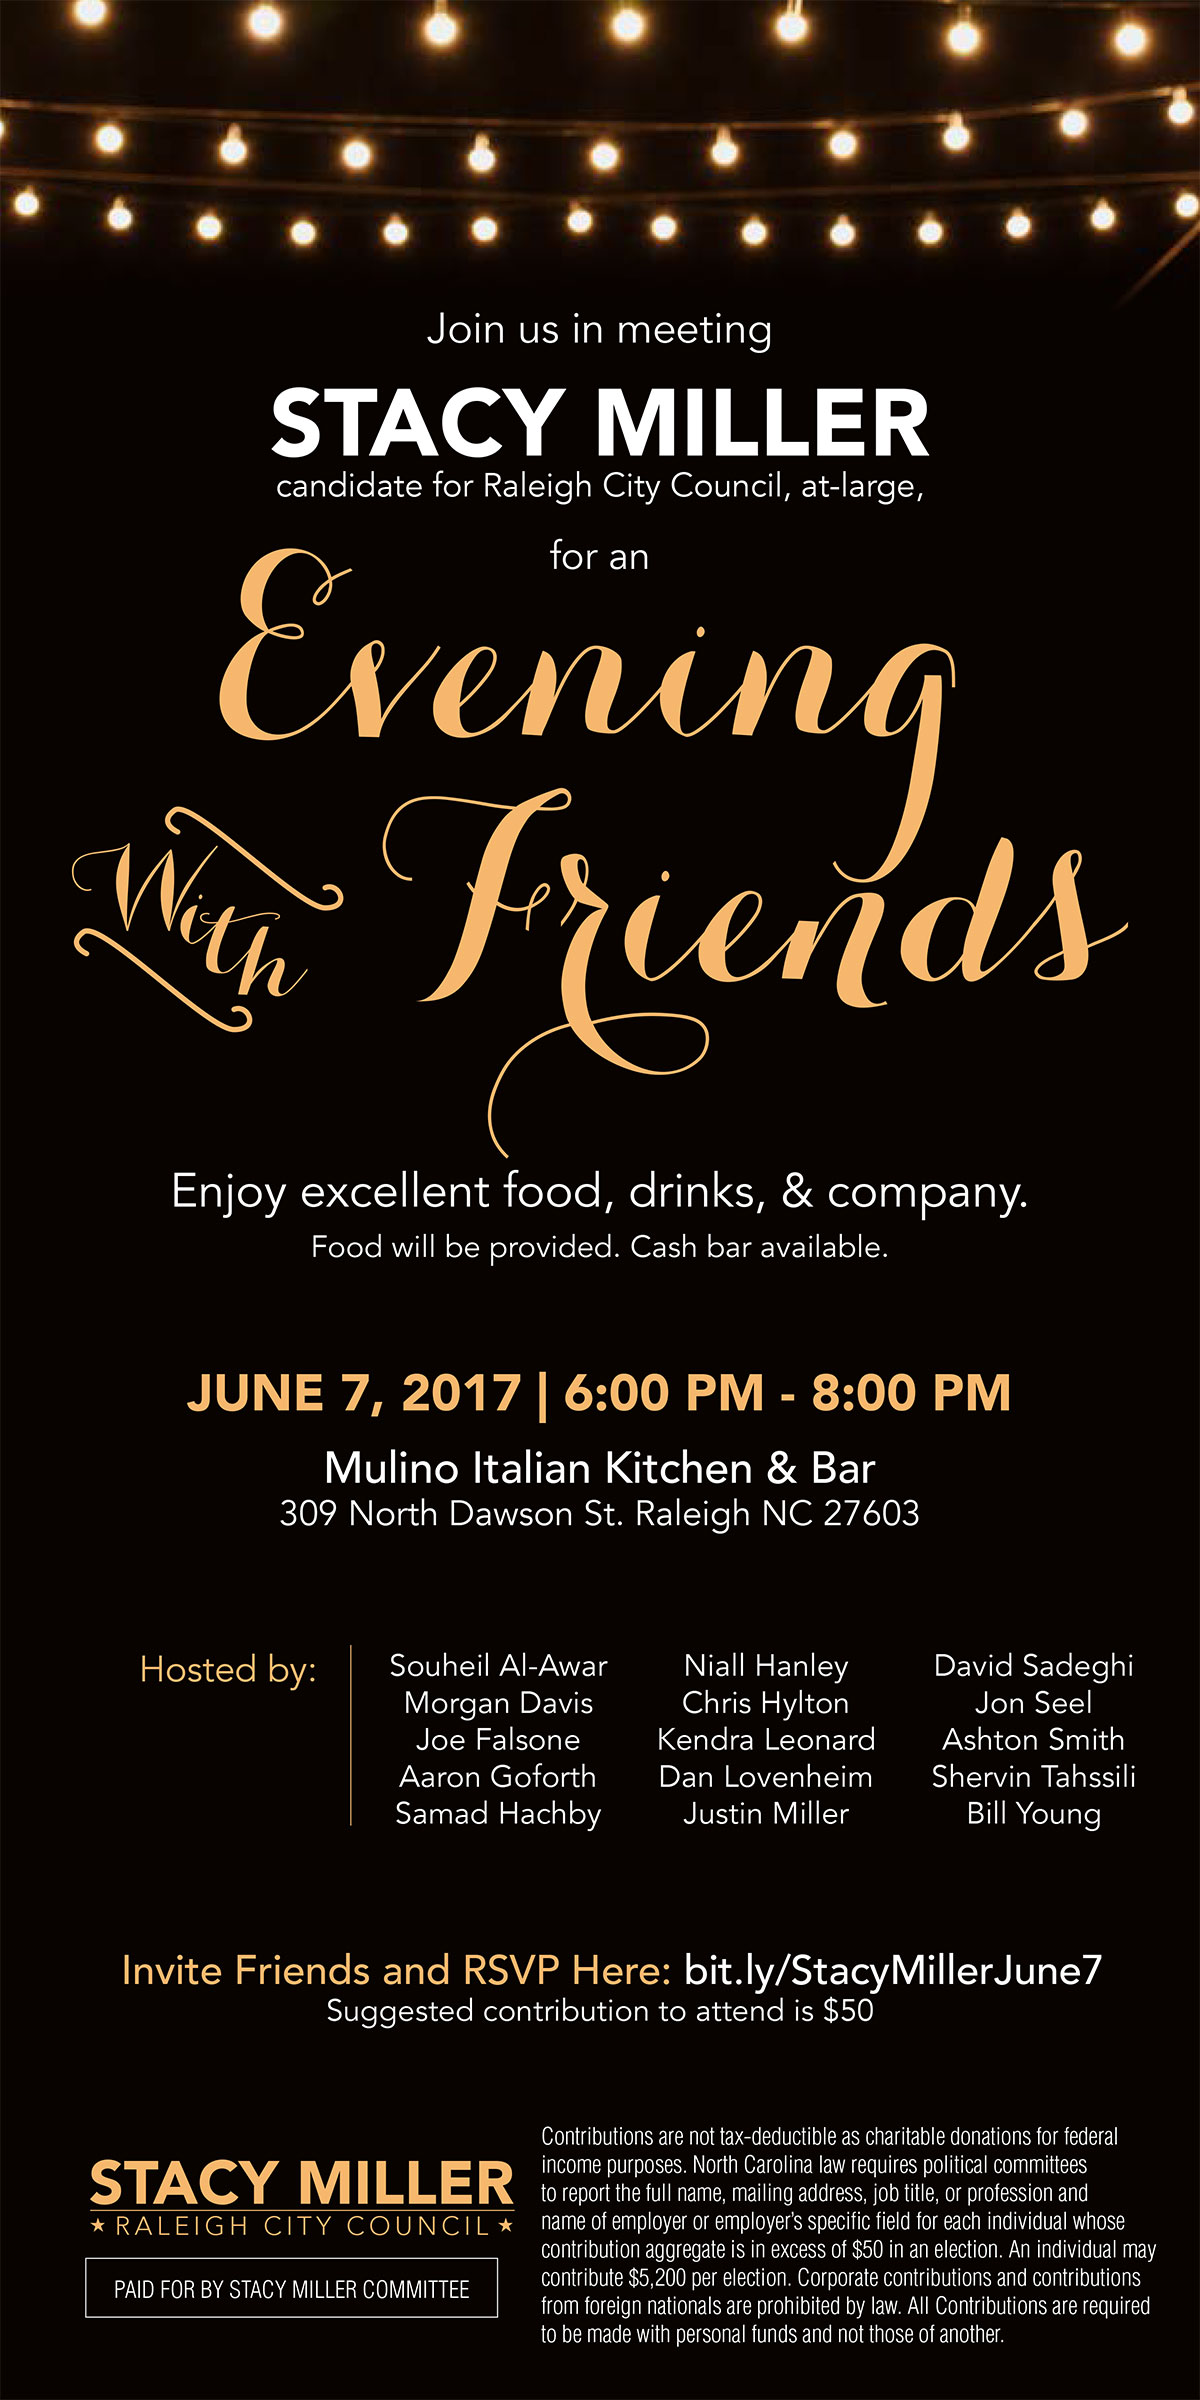 Stacy Miller: An Evening with Friends at Mulino Italian Kitchen & Bar